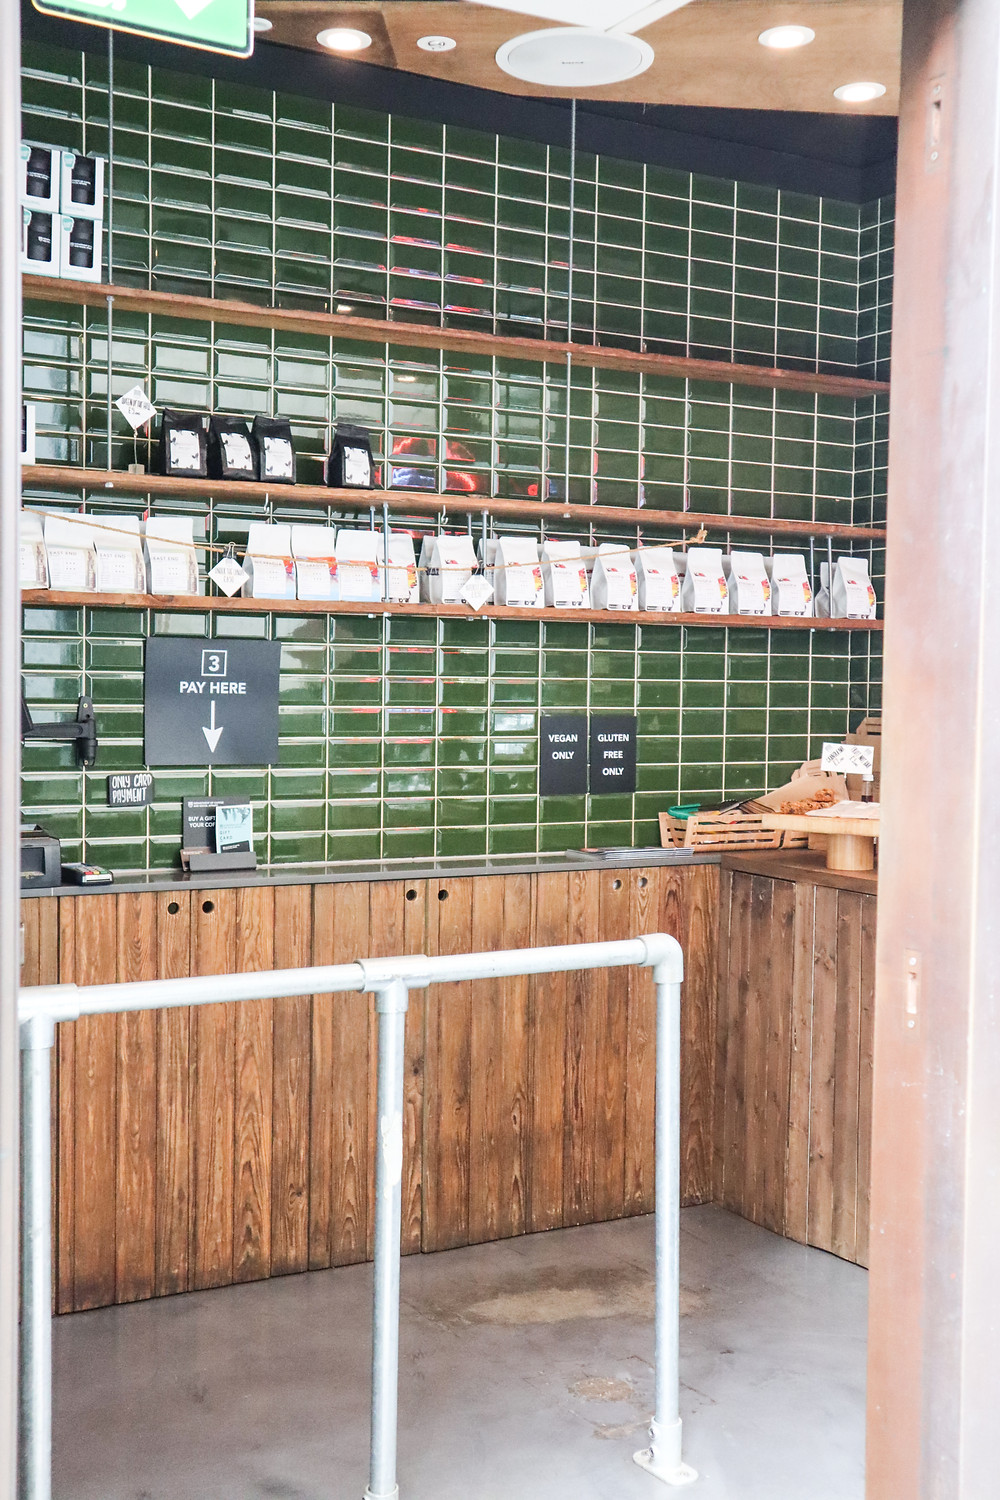 Entrance with coffee available for purchase